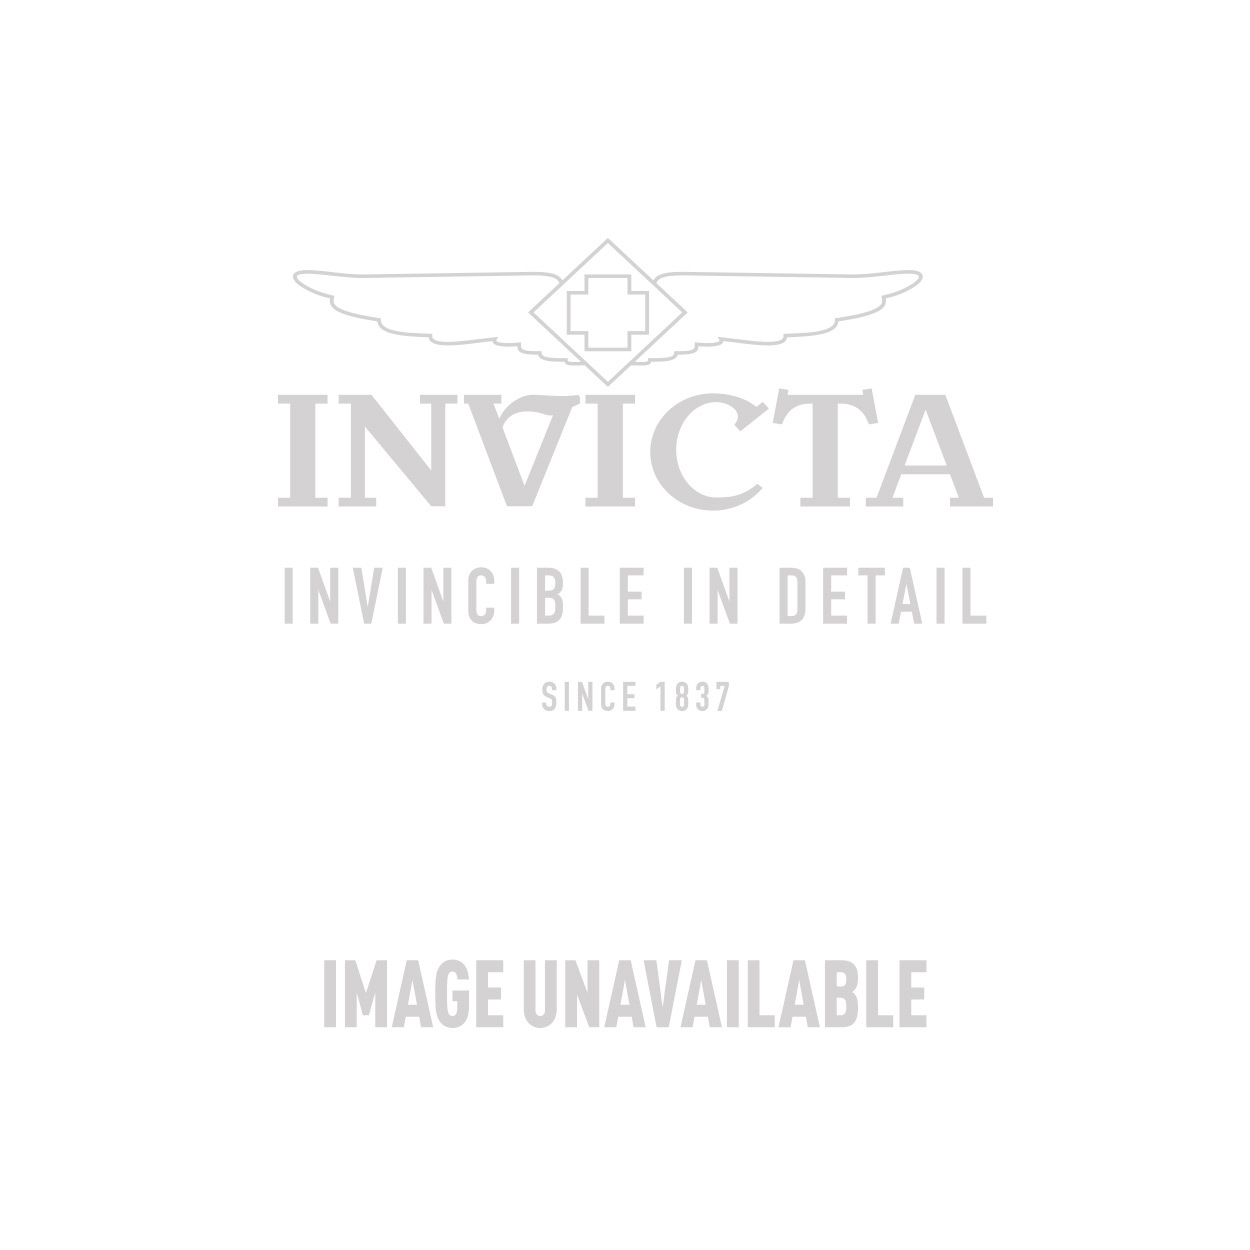 Invicta 21cm Men's Bracelets in Rhodium Aged - Model J0308